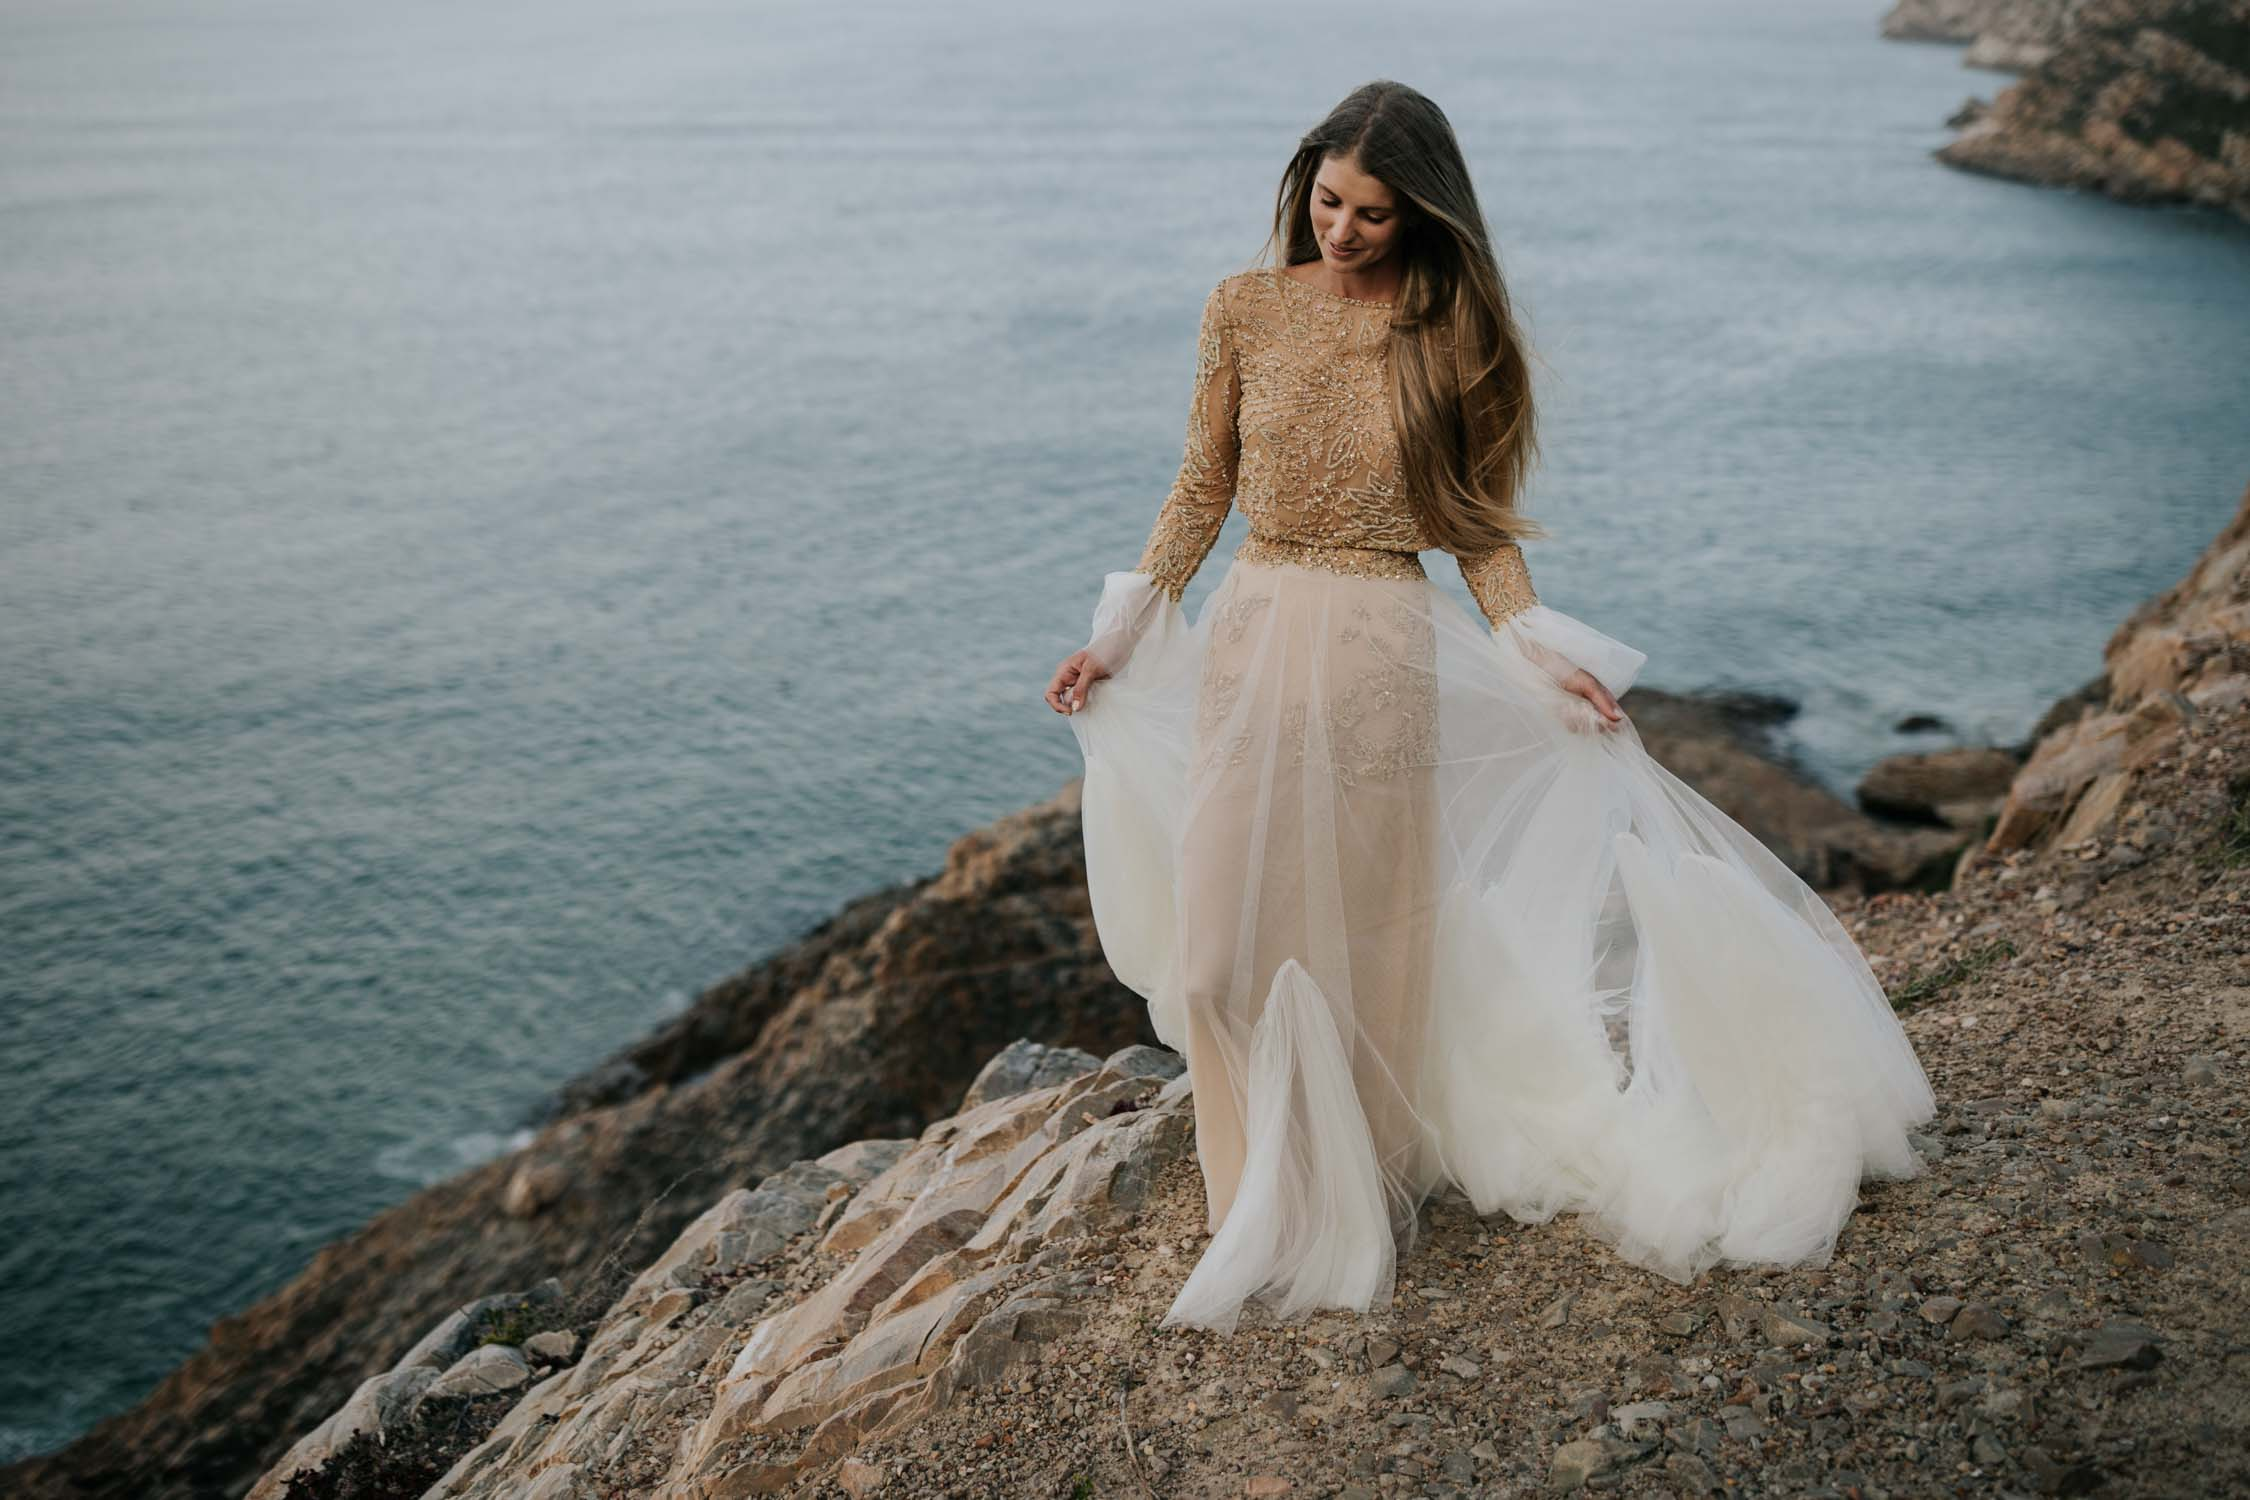 Boho bride wears gypsy wedding dress with flared long sleeves, sheer skirt and gold detailed top on top of a cliff with epic wild ocean below